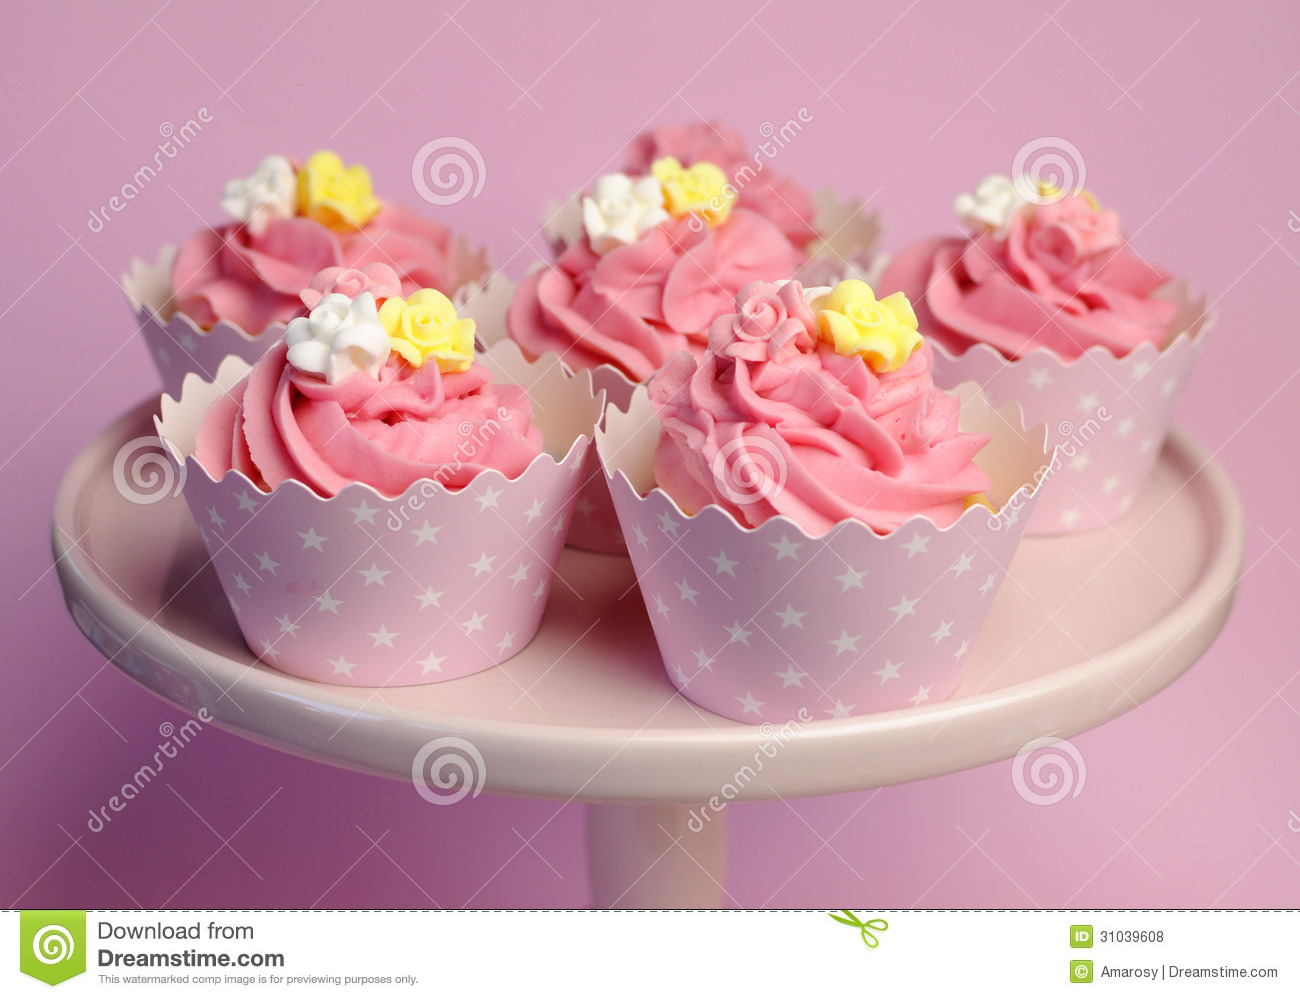 Beautiful Pink Decorated Cupcakes On Pink Cake Stand In